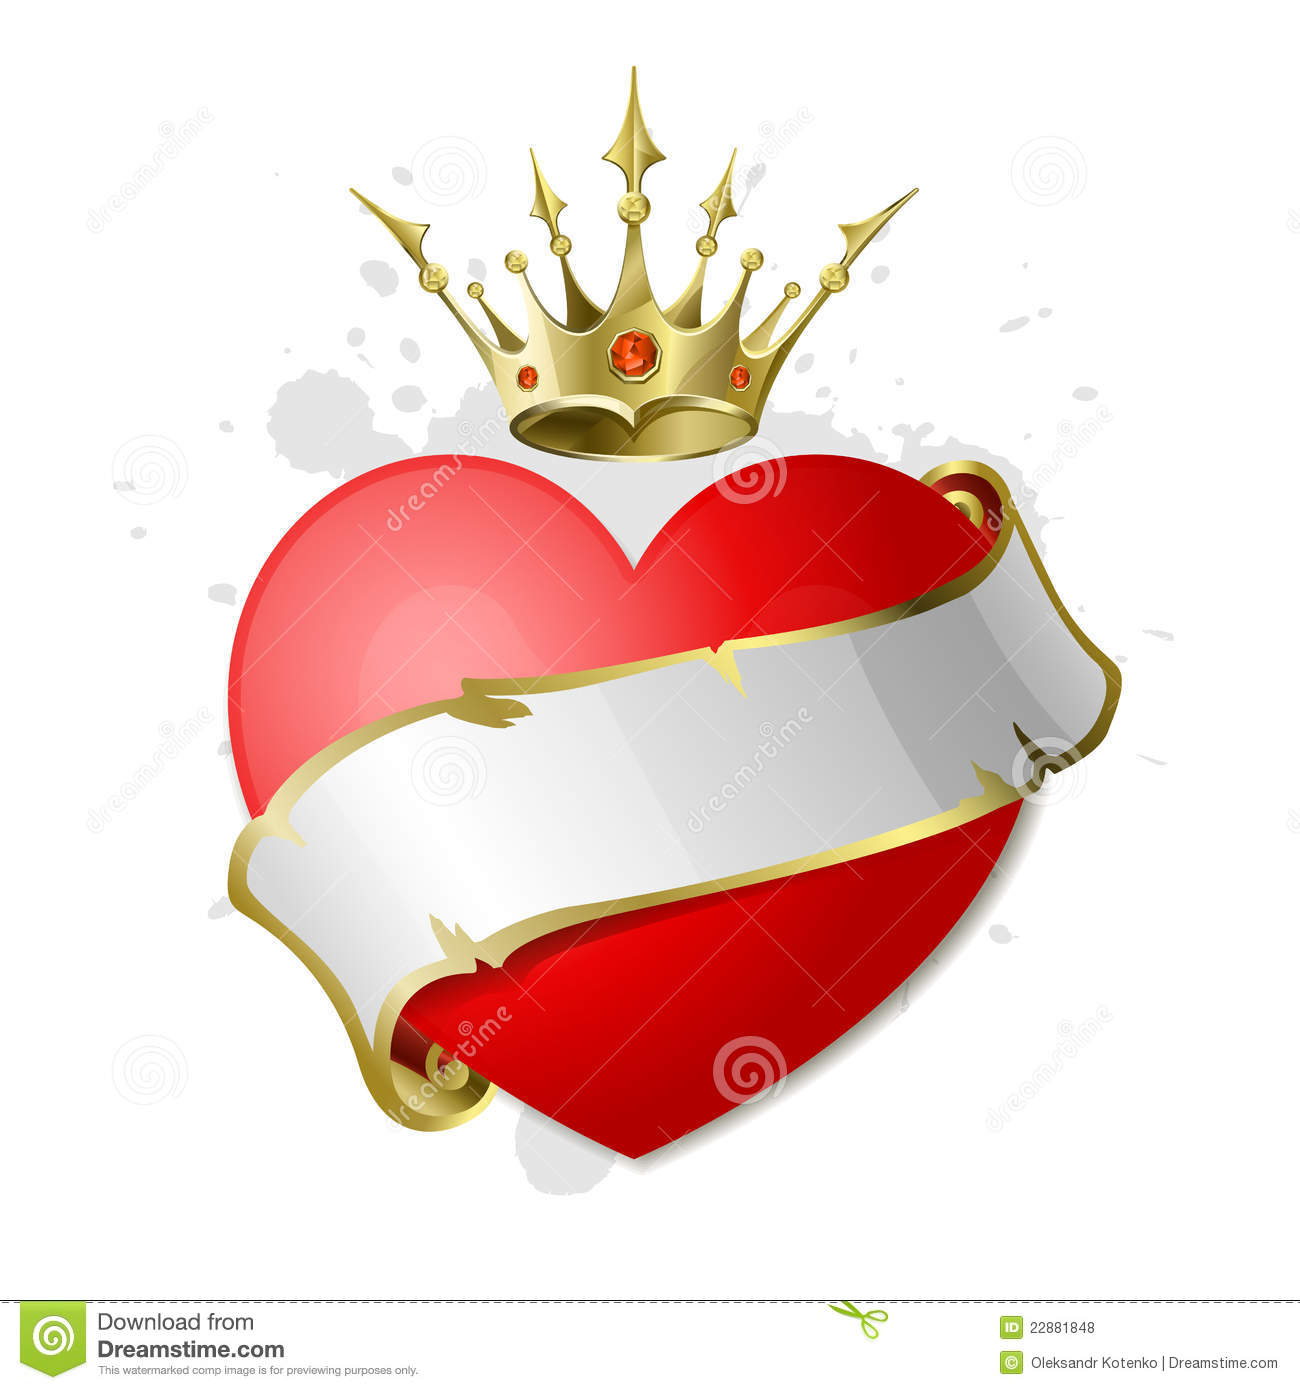 Heart With Ribbon And Crown Royalty Free Stock Photos